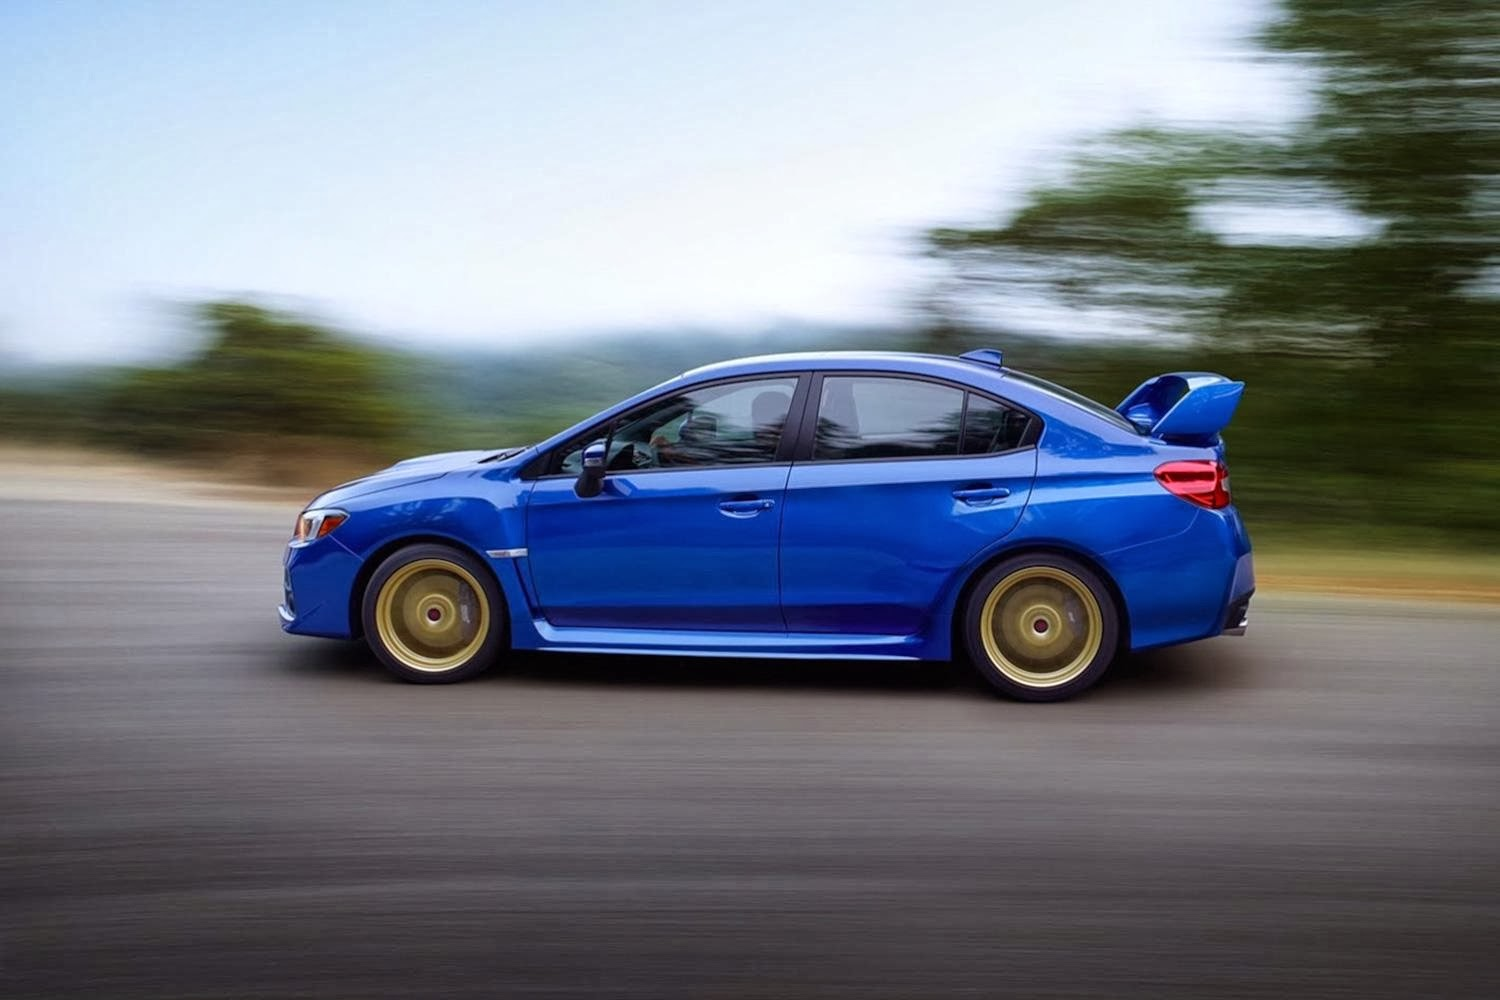 subaru impreza wrx sti 2015 hd wallpaper with cars jokercars super car. Black Bedroom Furniture Sets. Home Design Ideas